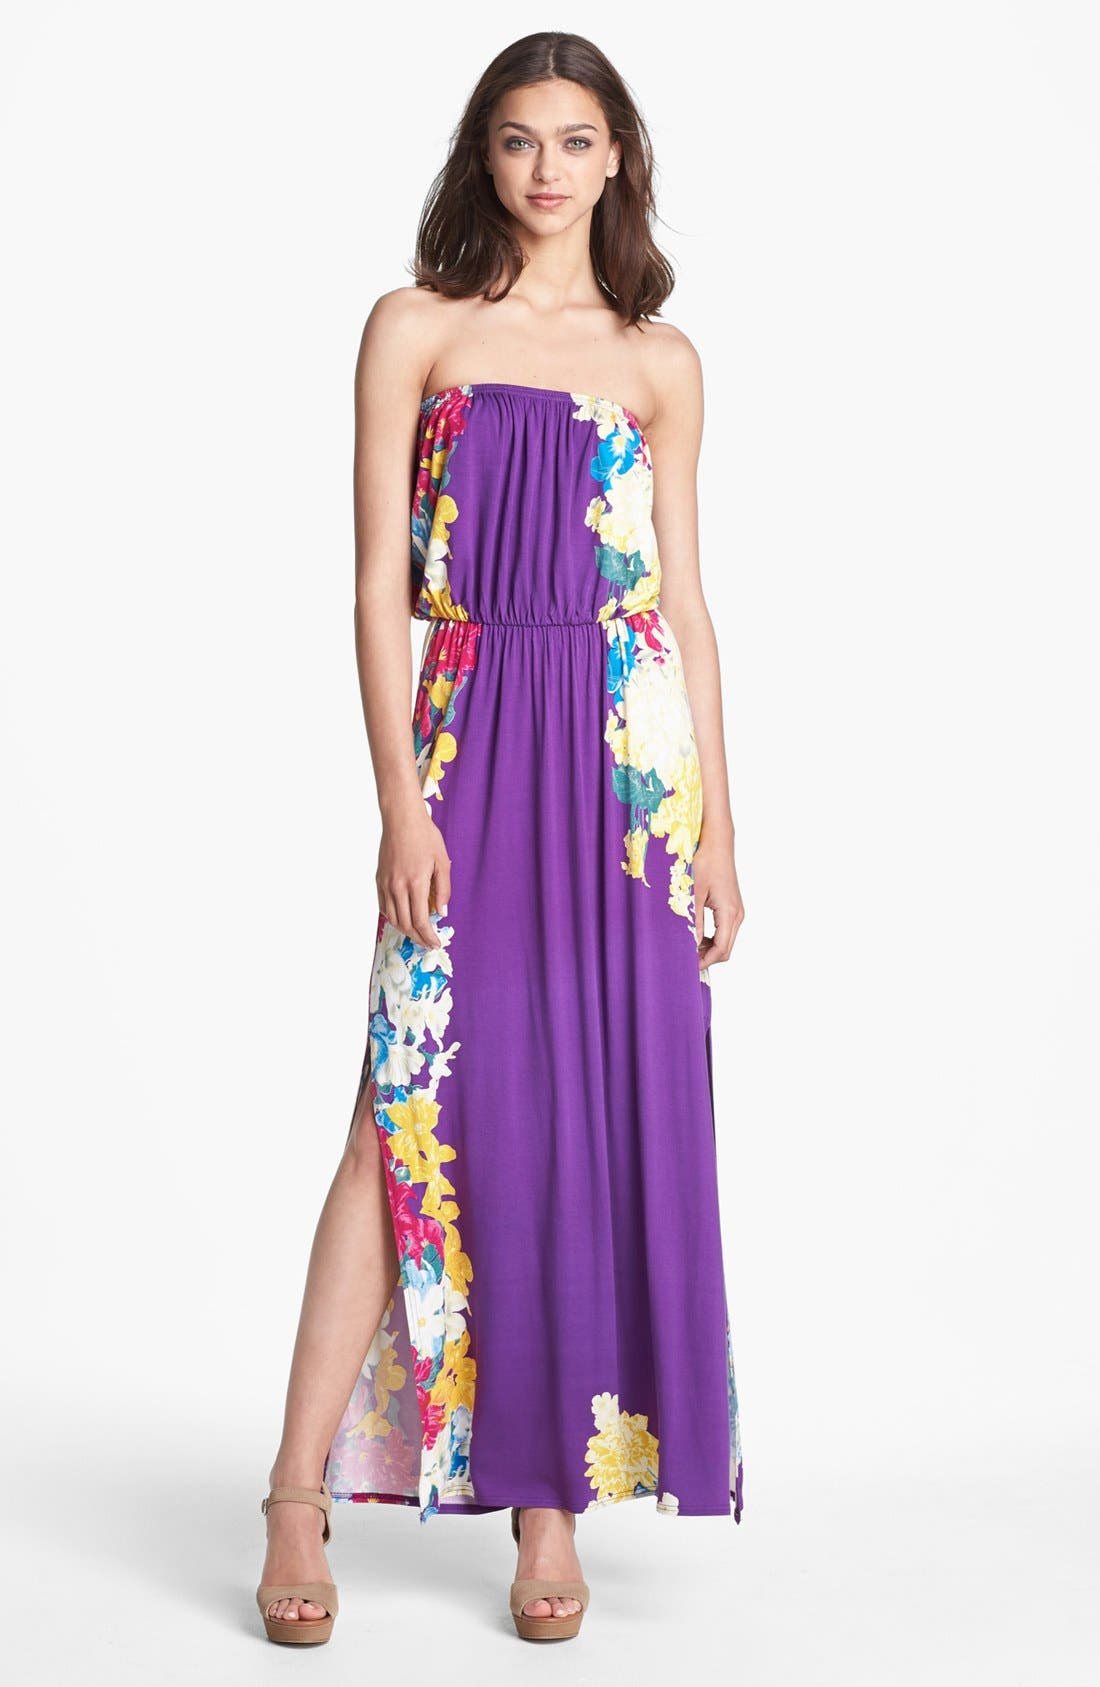 Main Image - Felicity & Coco Print Jersey Maxi Dress (Regular & Petite) (Nordstrom Exclusive)